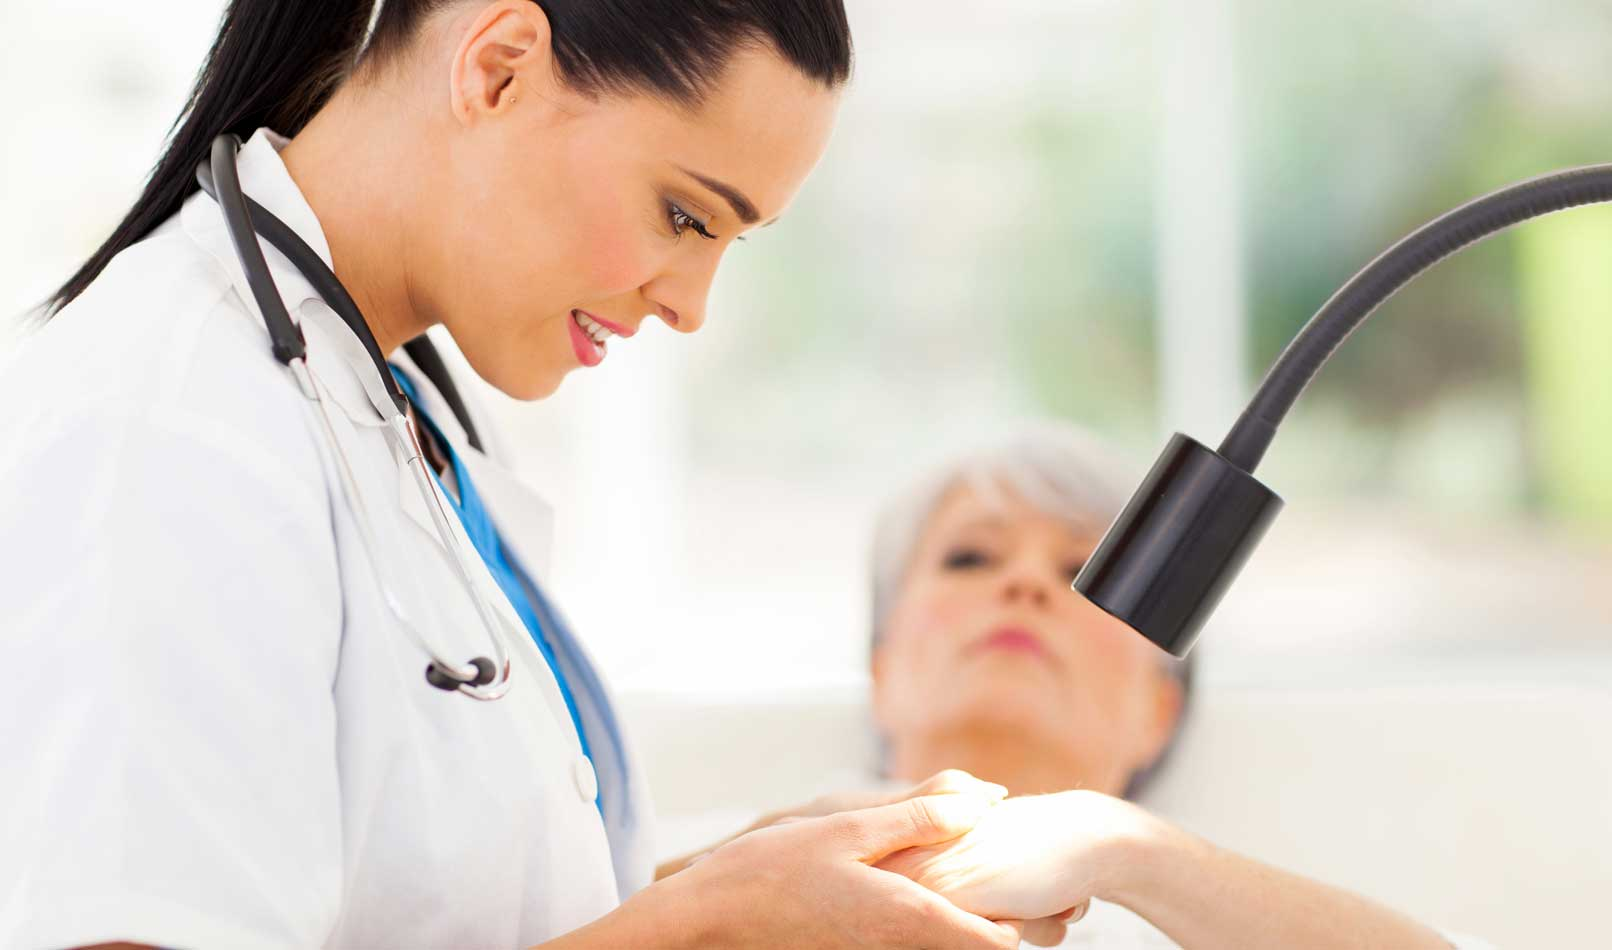 lady-doctor-treatment-mohs-surgery